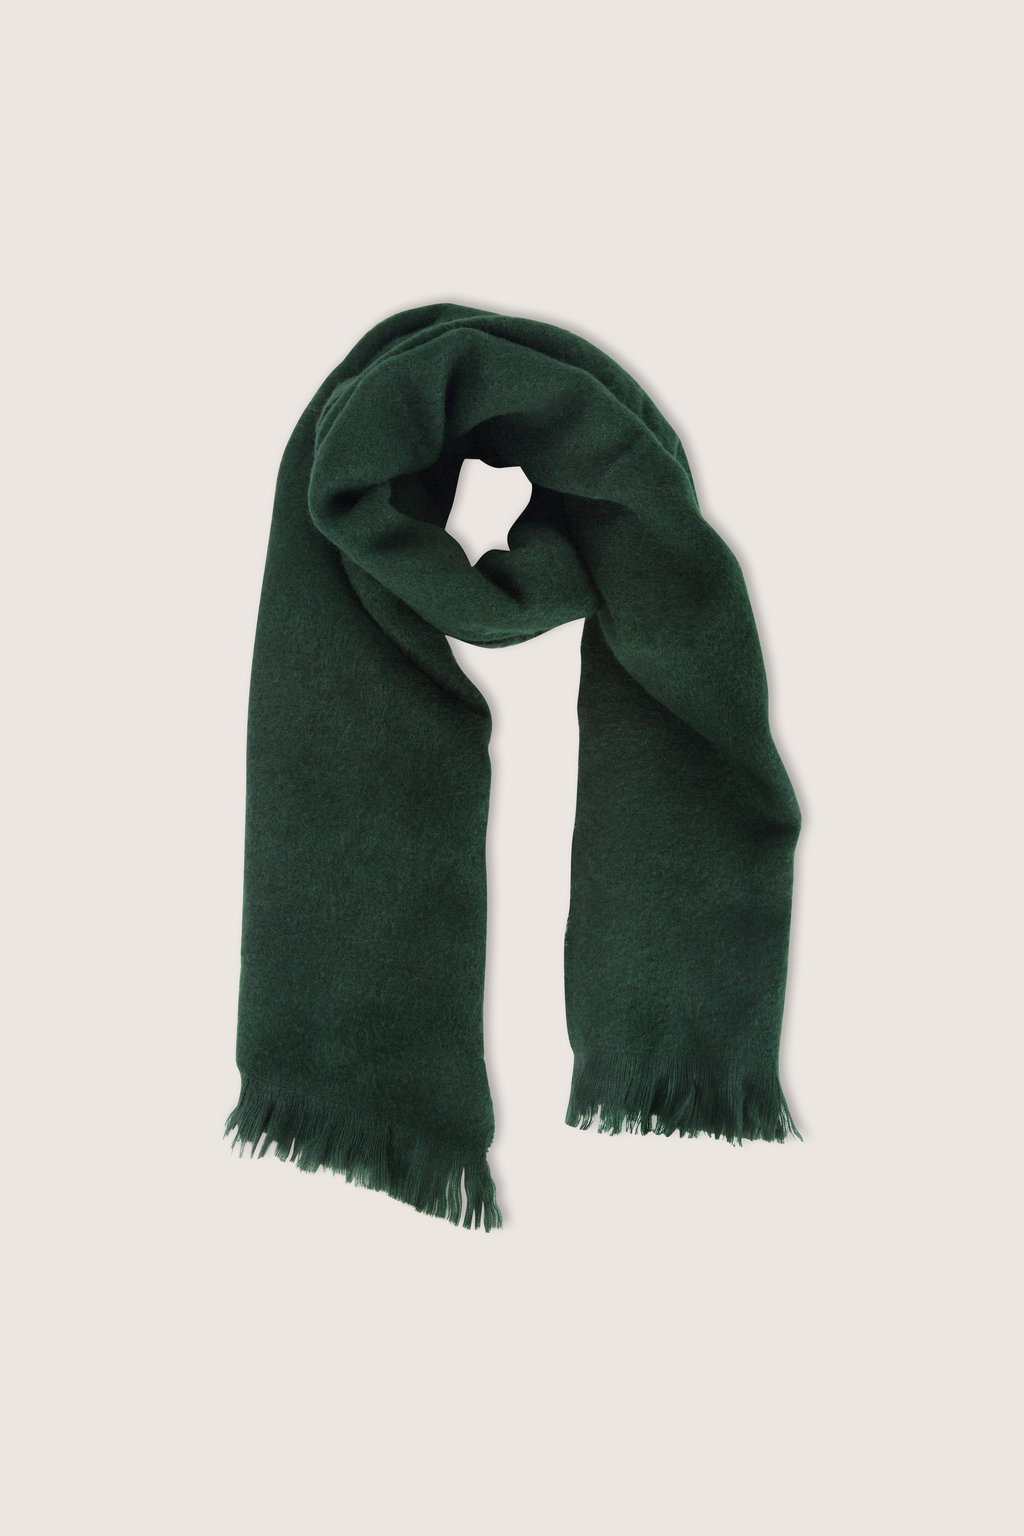 Scarf H020 Green 3